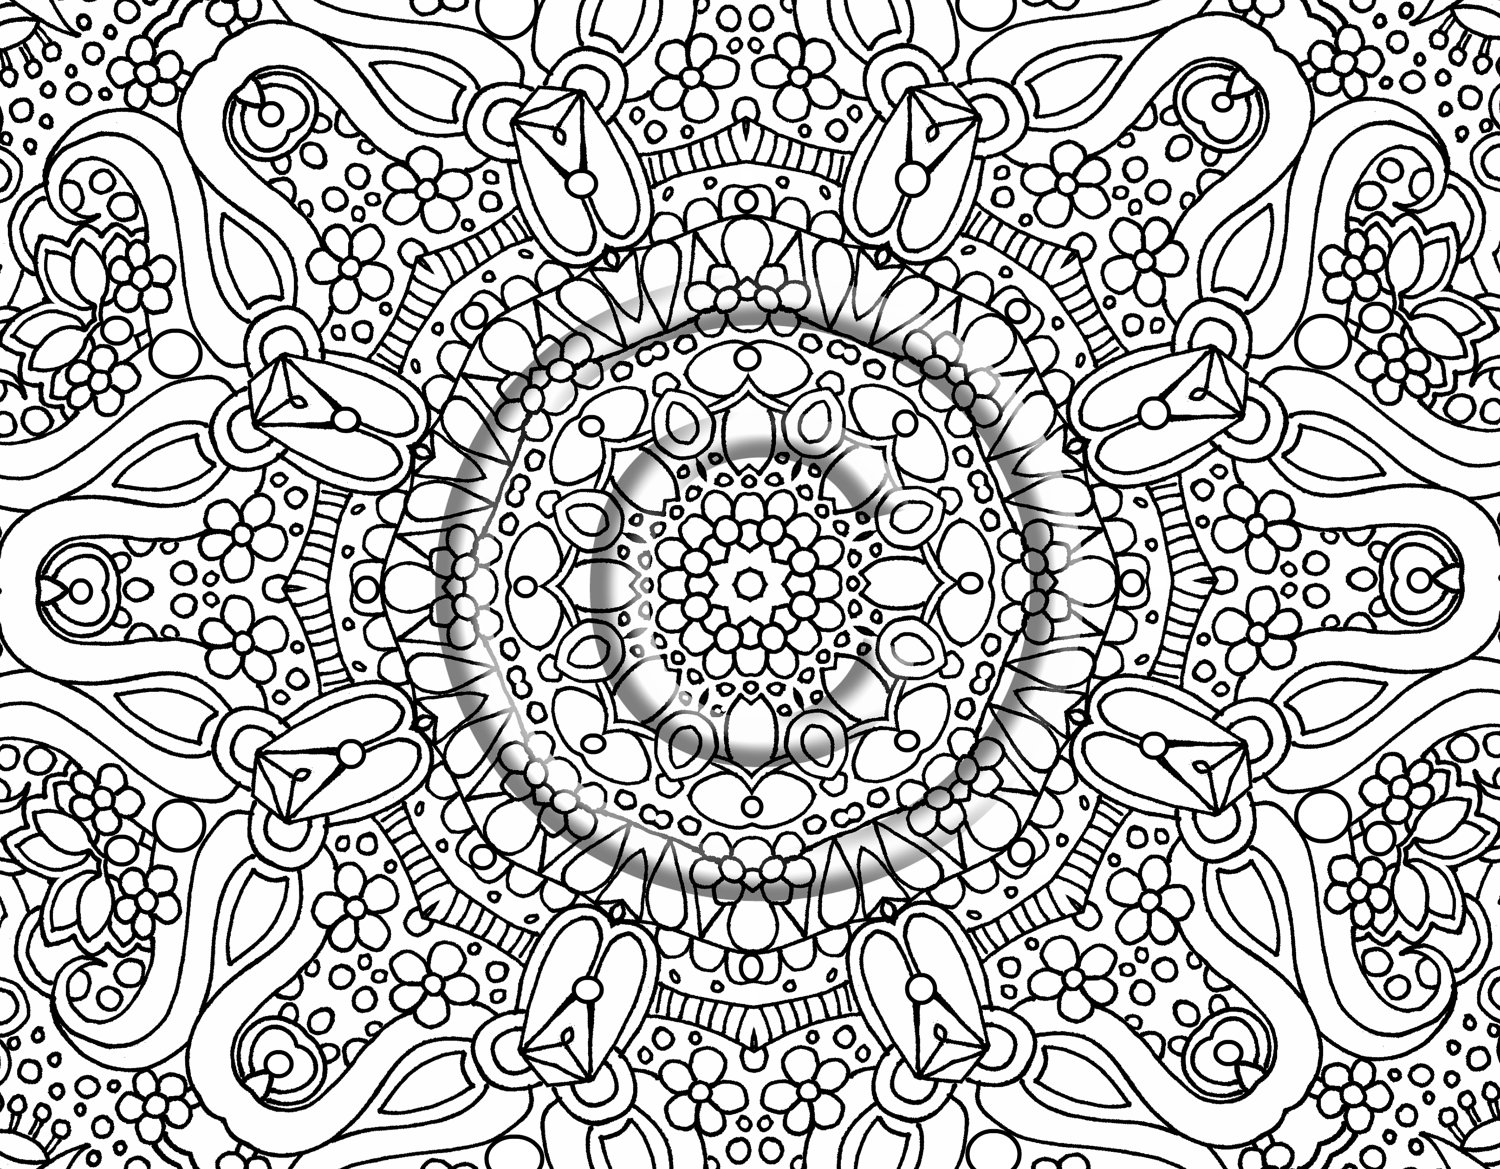 1500x1169 Sensational Design Free Abstract Coloring Pages Printable